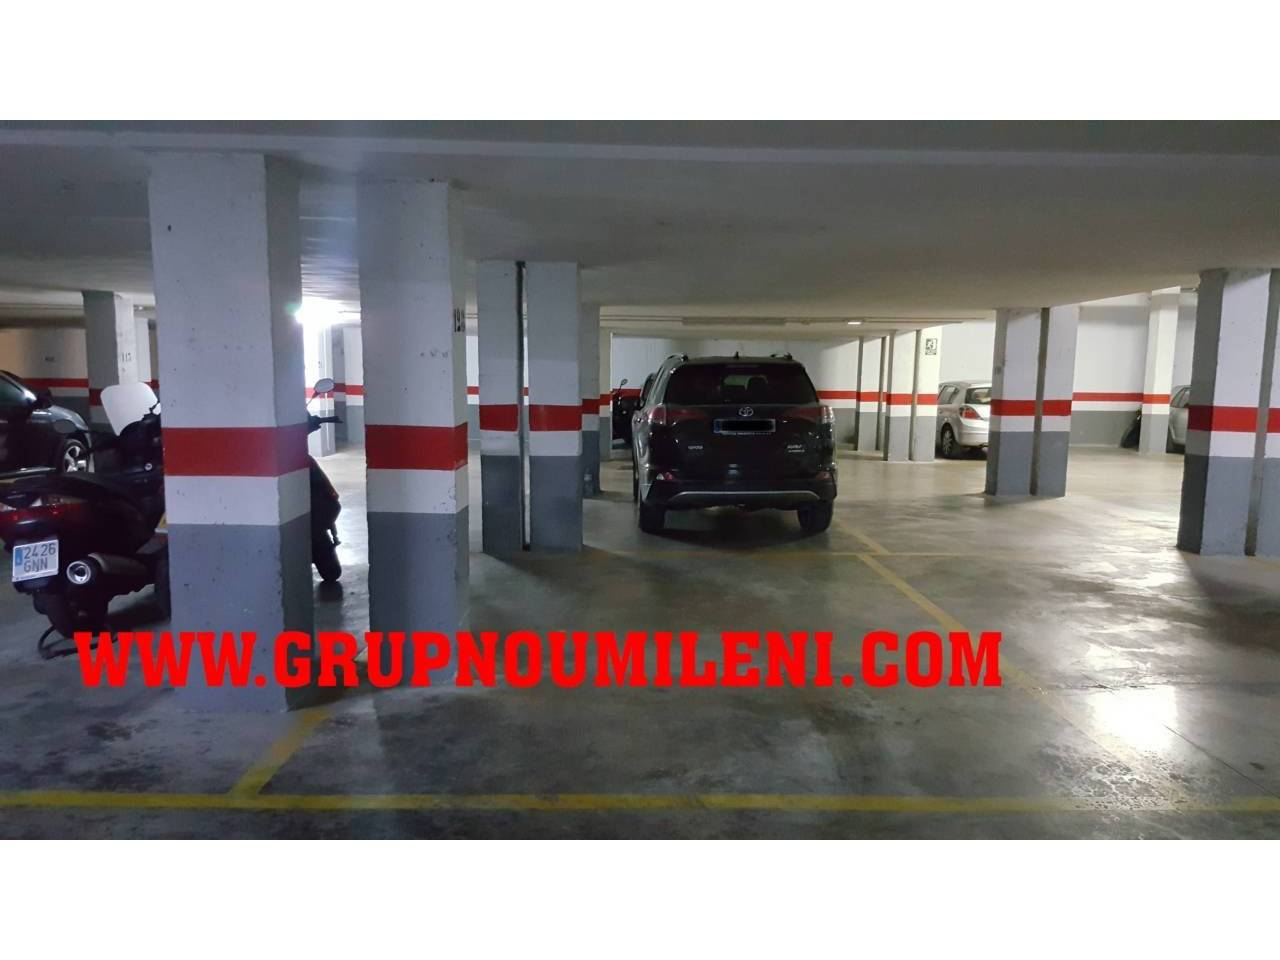 Rent Car parking in Catarroja. Superf. 6 m², 1 plazas, subterráneo, columnas laterales, traster